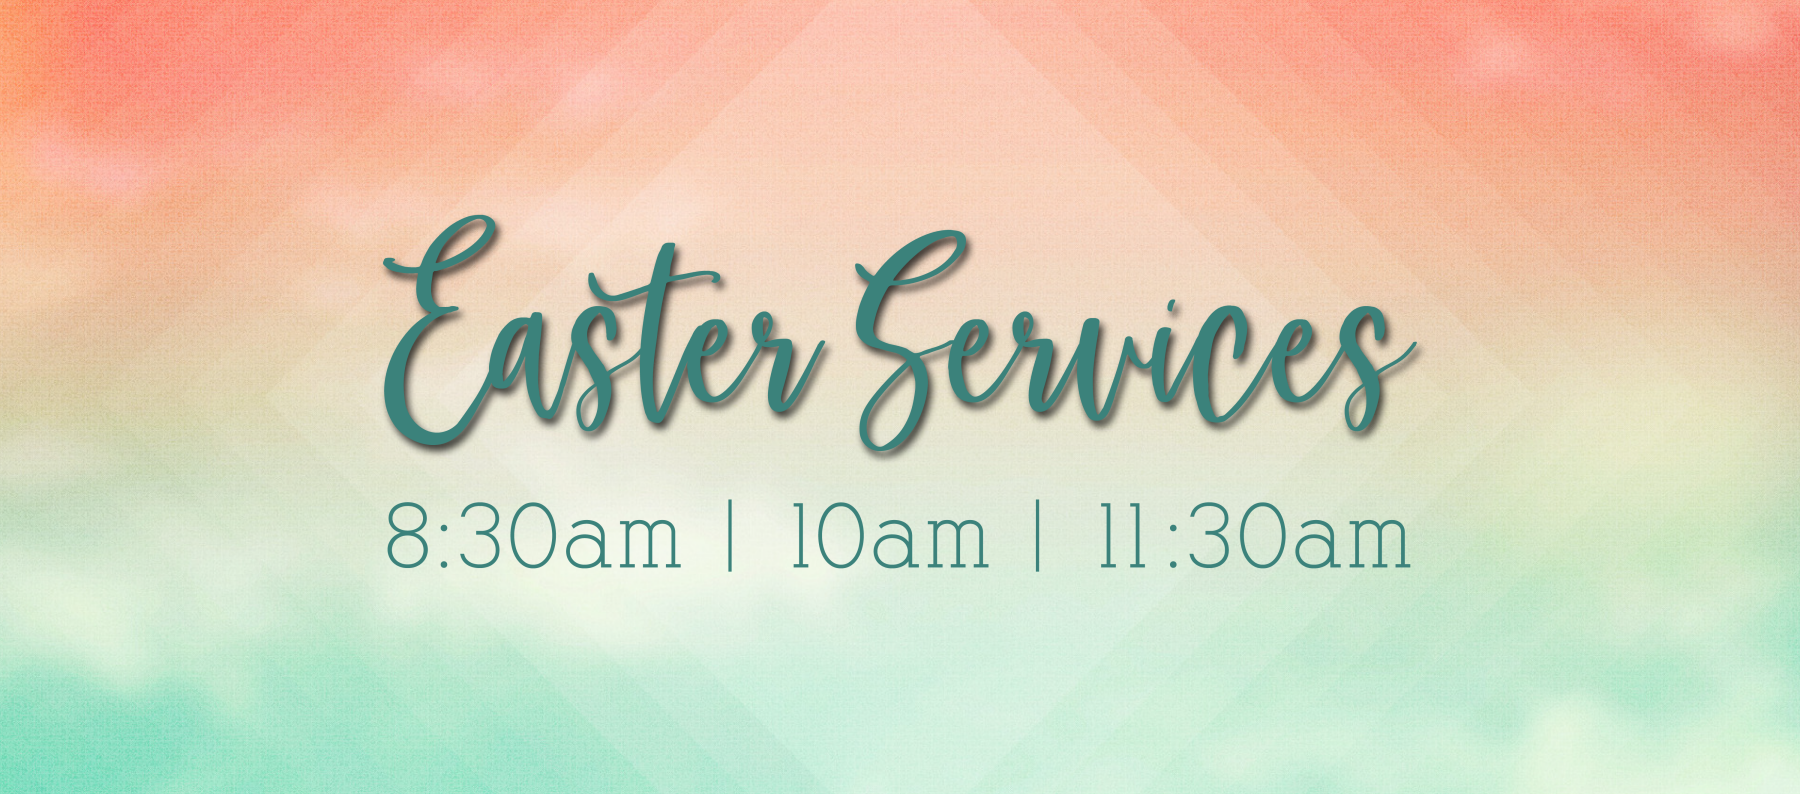 11:30am Easter Service